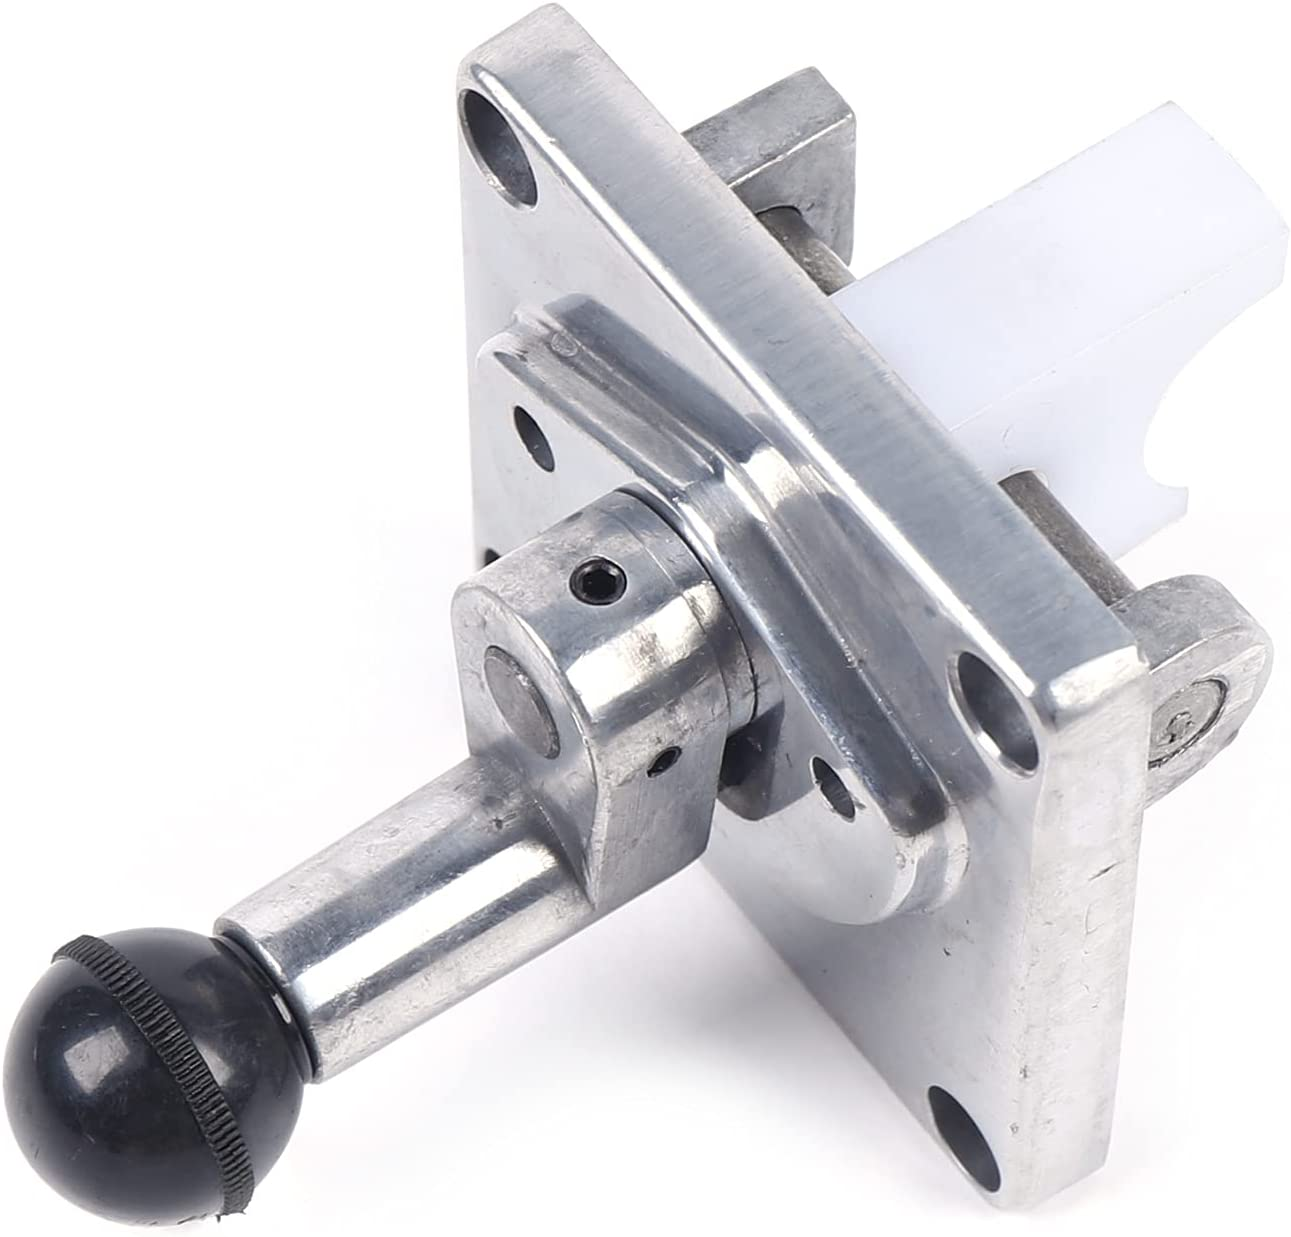 Milling Machine B60-72 Variable Speed Ass Shift Gear Max 84% OFF Cover Crank shopping